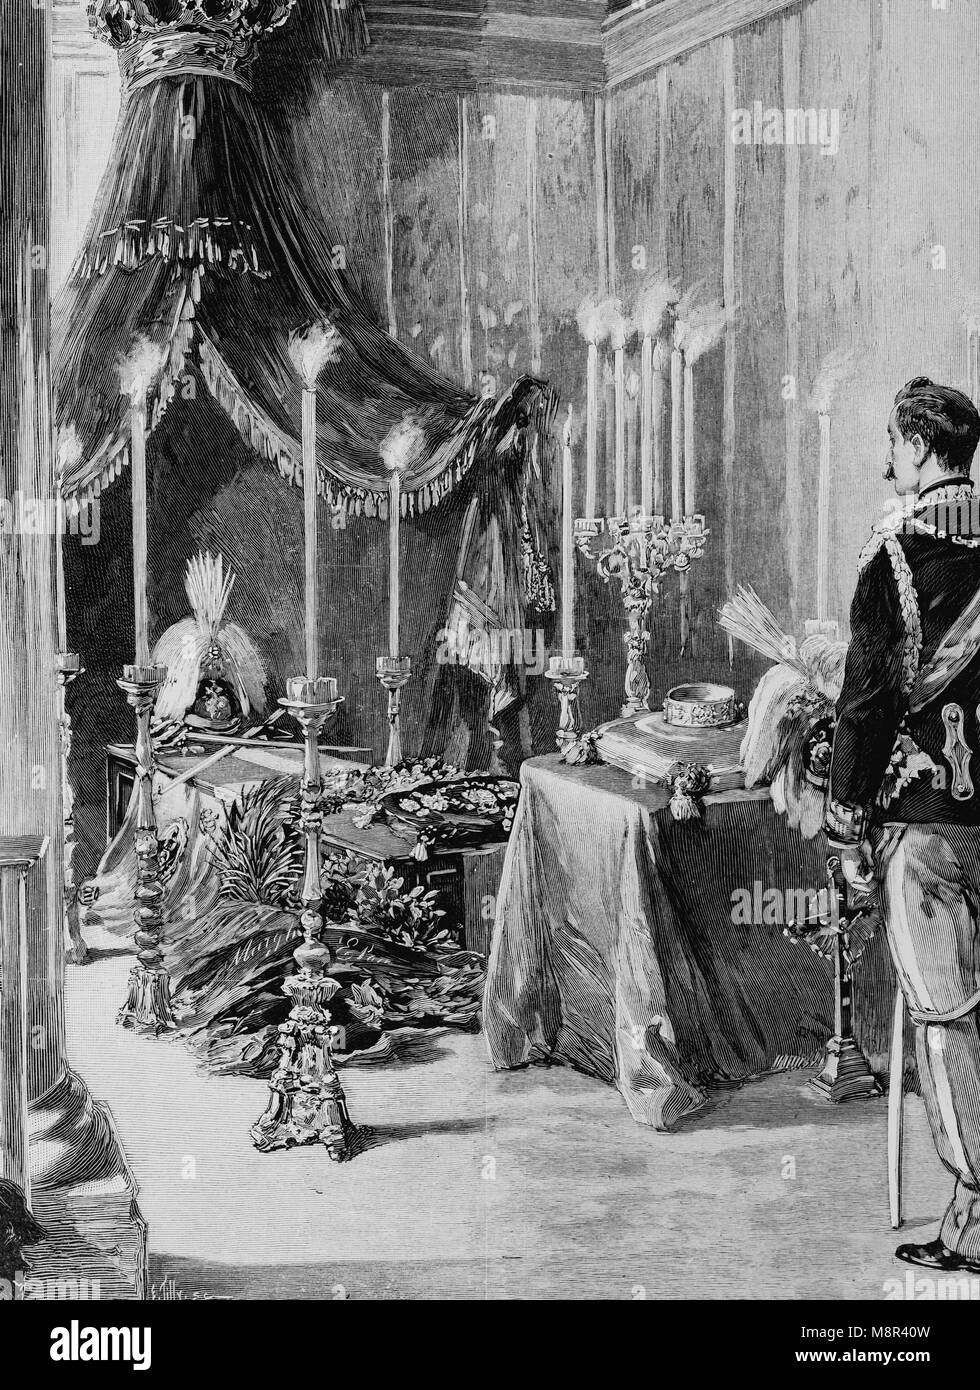 Coffin of King Humberto I guarded by the Aosta Duke in the Monza Castle, Picture from the French weekly newspaper - Stock Image